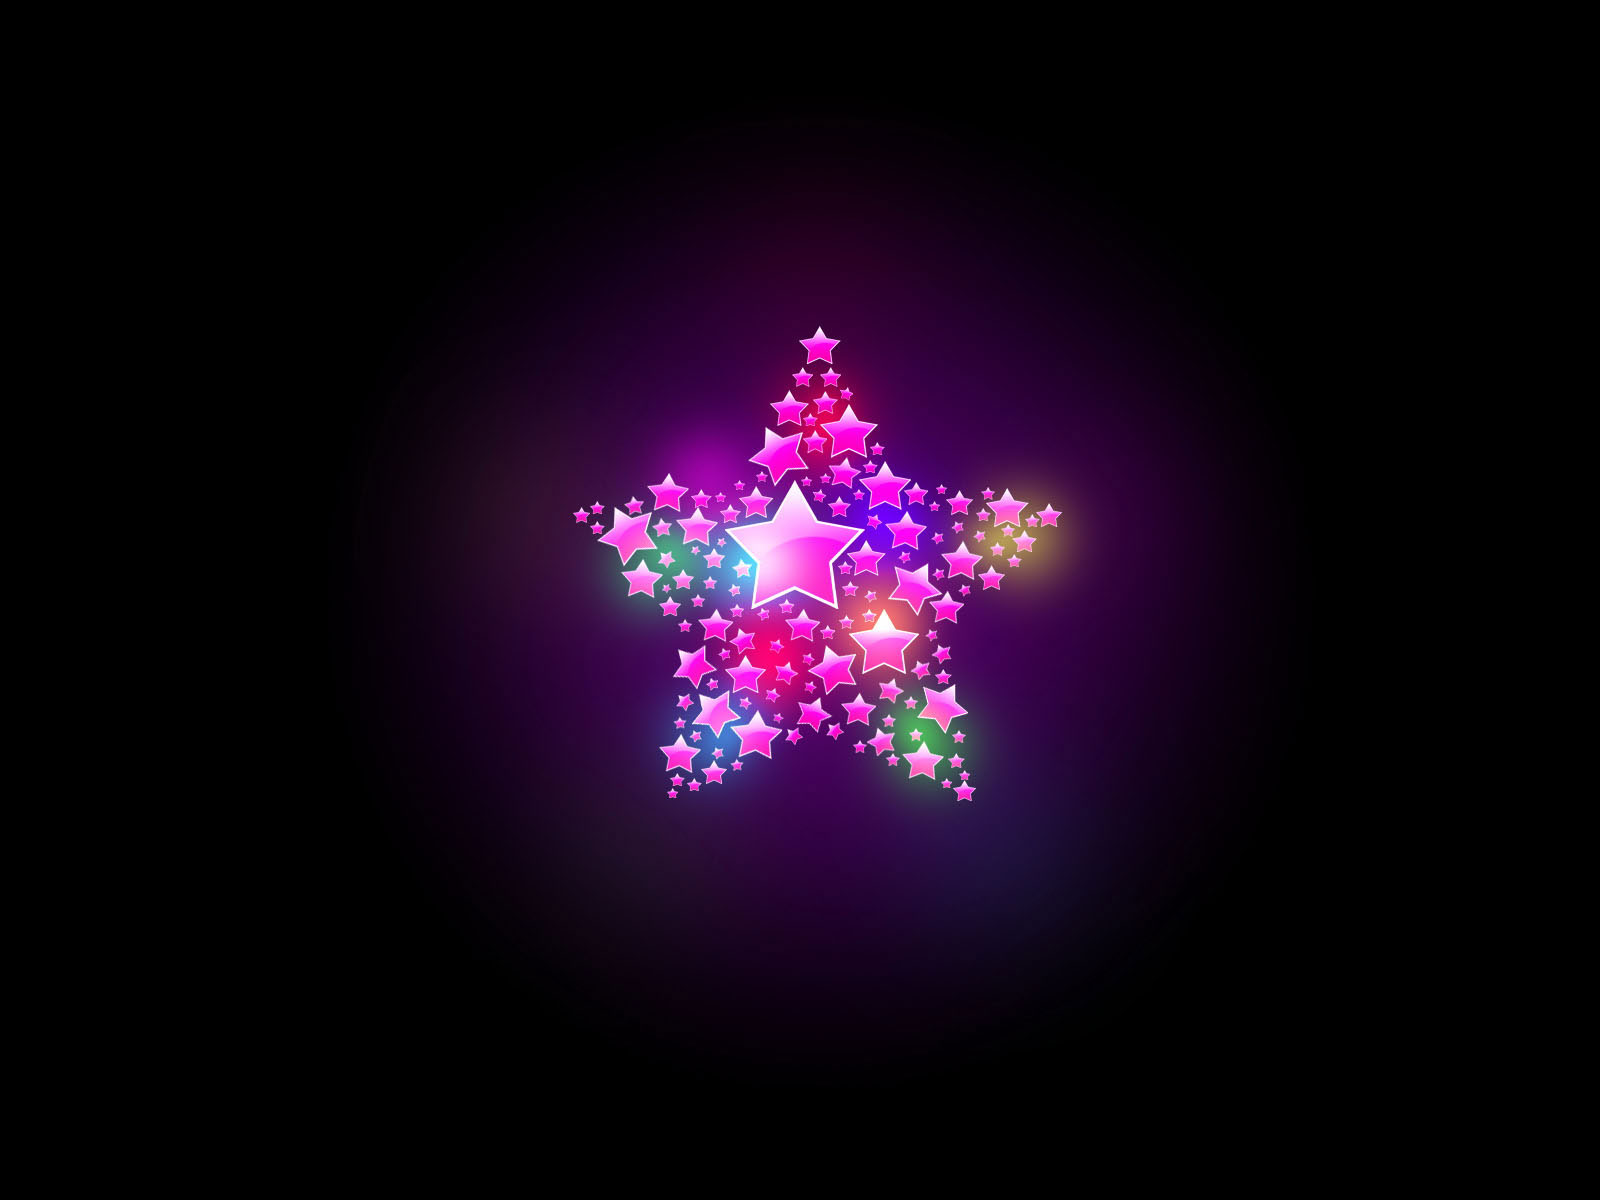 Bright star design wallpaper colorful desktop background Abstract 1600x1200